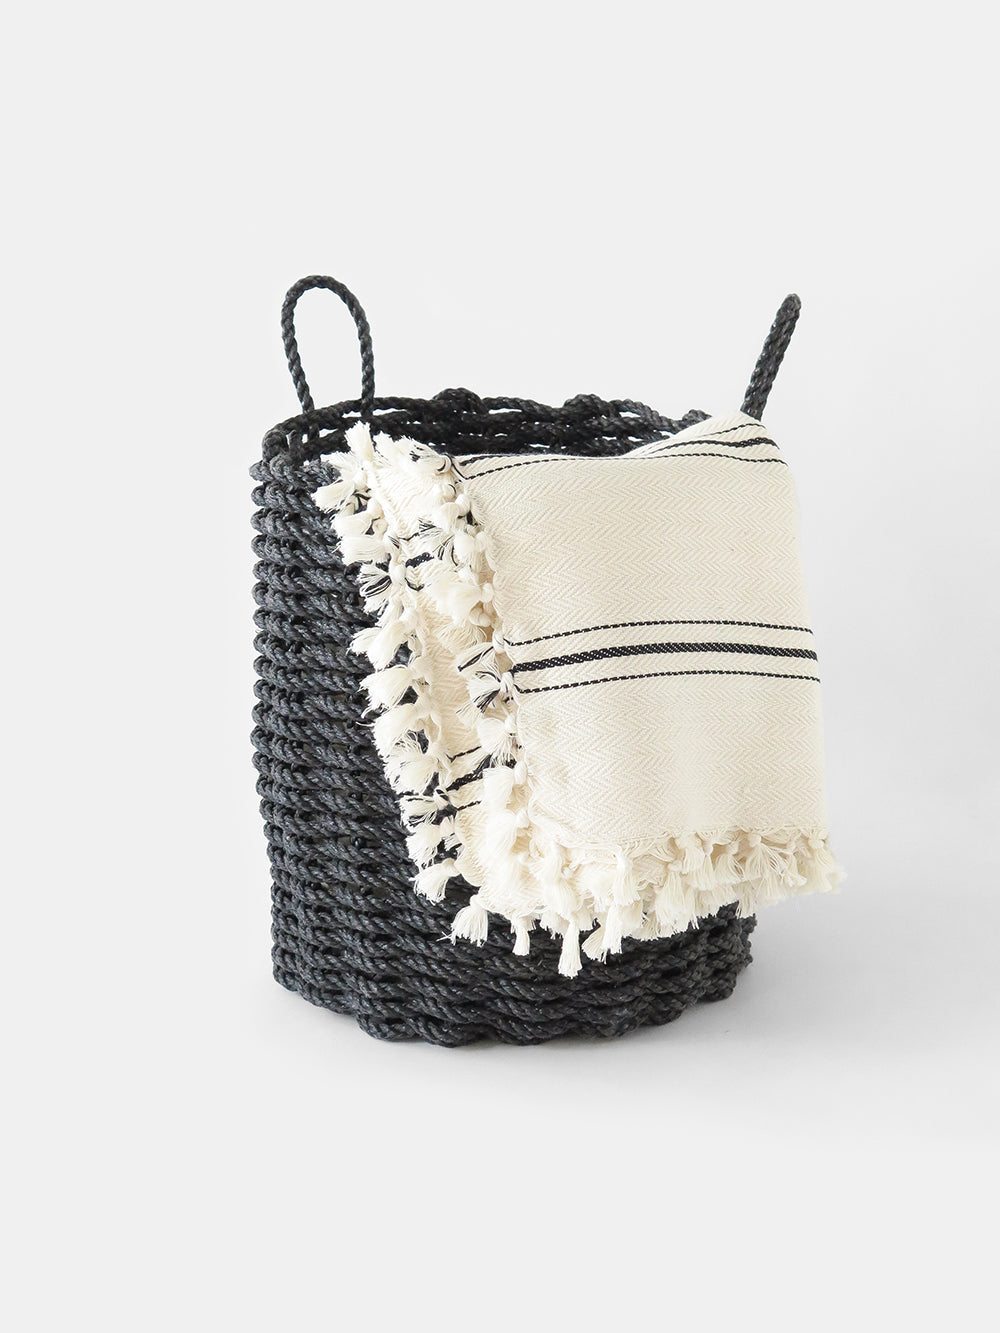 the rope co. tall woven basket in charcoal